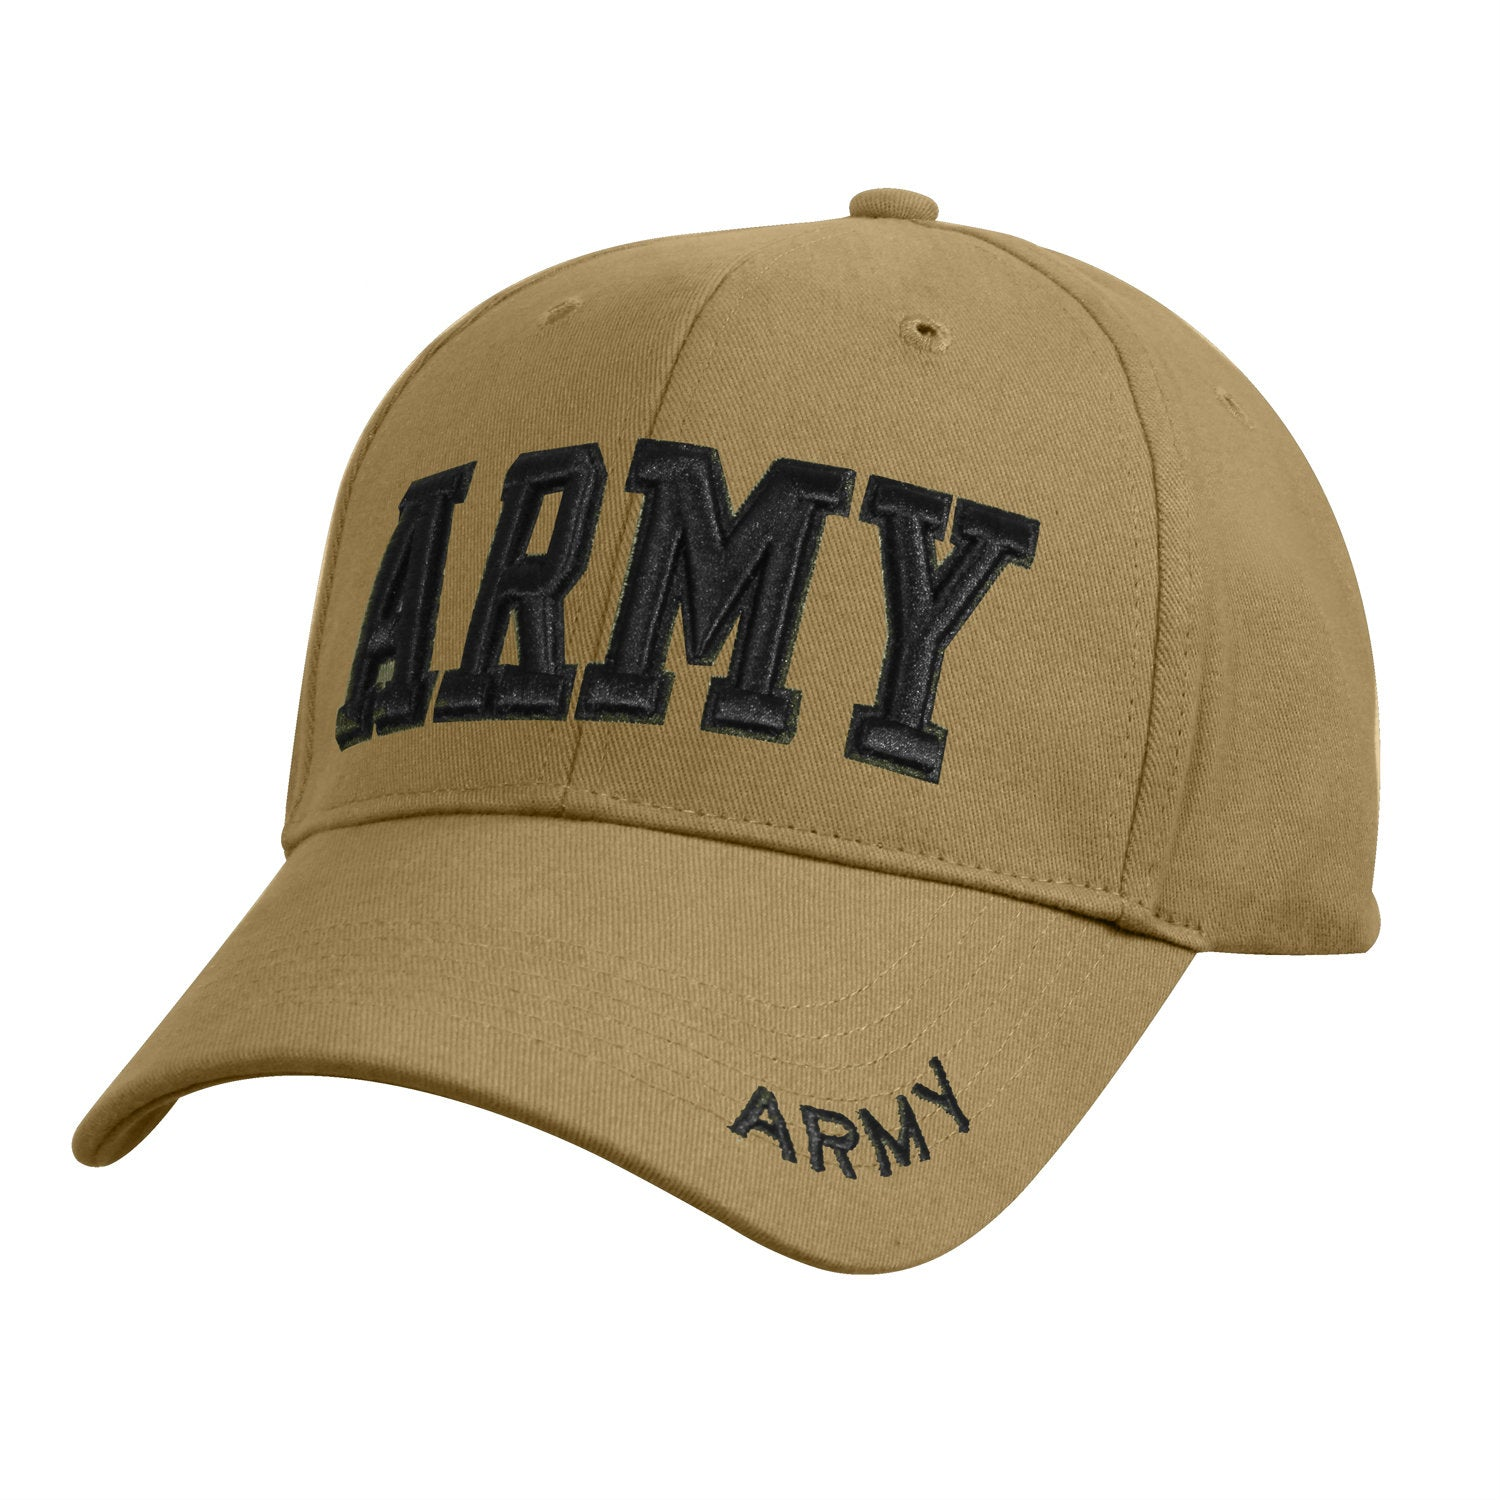 Army Text Hat Coyote